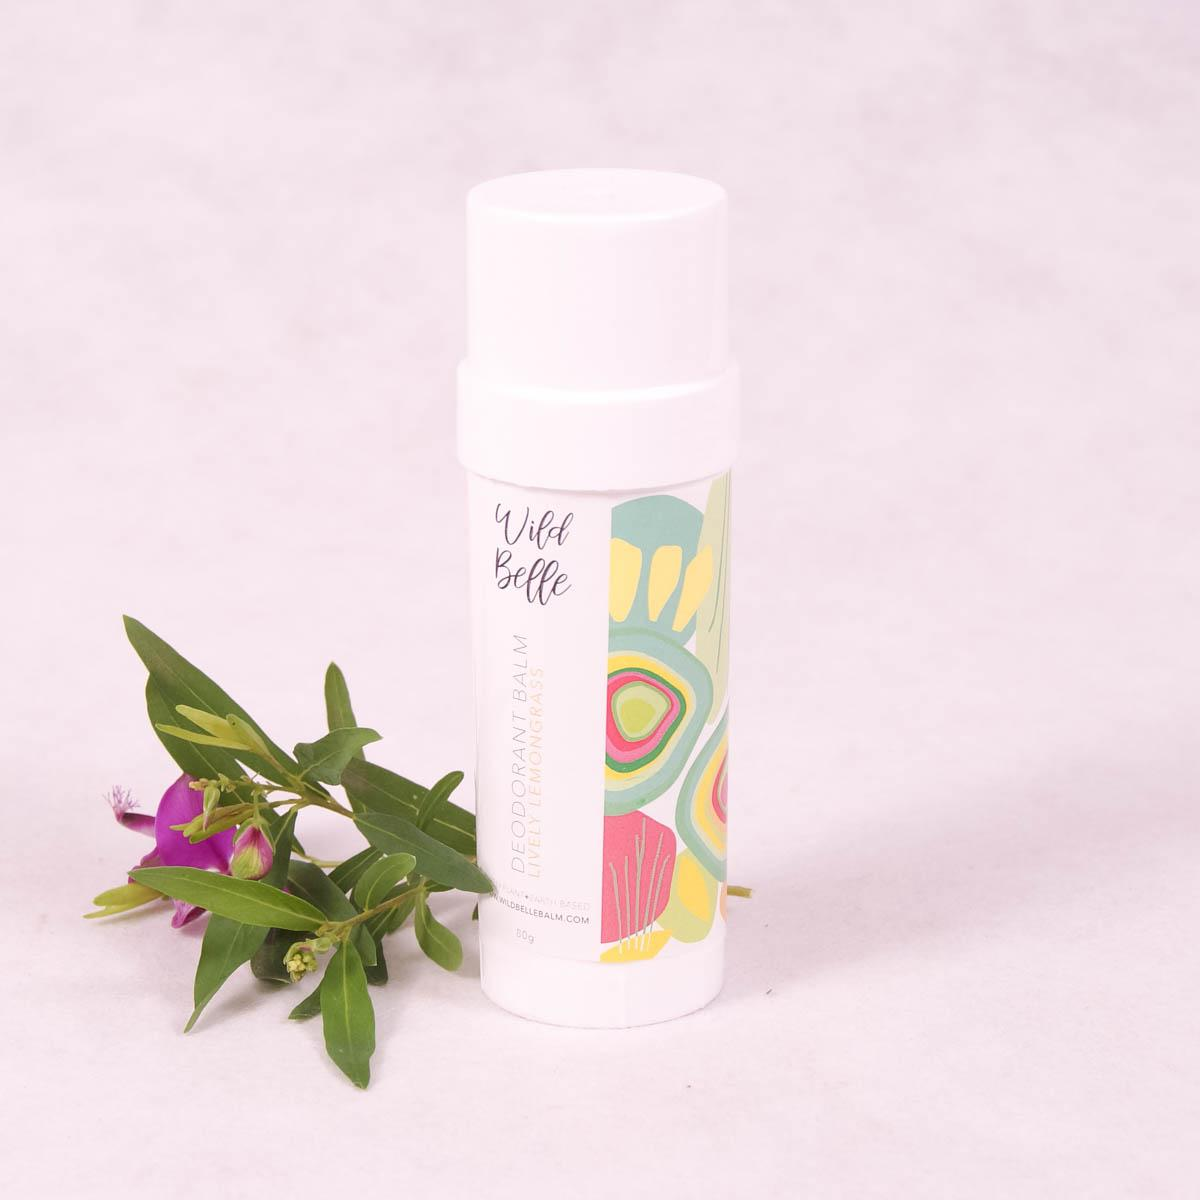 Lively Lemongrass Natural Deodorant Balm - 80g Twist Tube - Deodorant - Throw Some Seeds - Australian gardening gifts and eco products online!